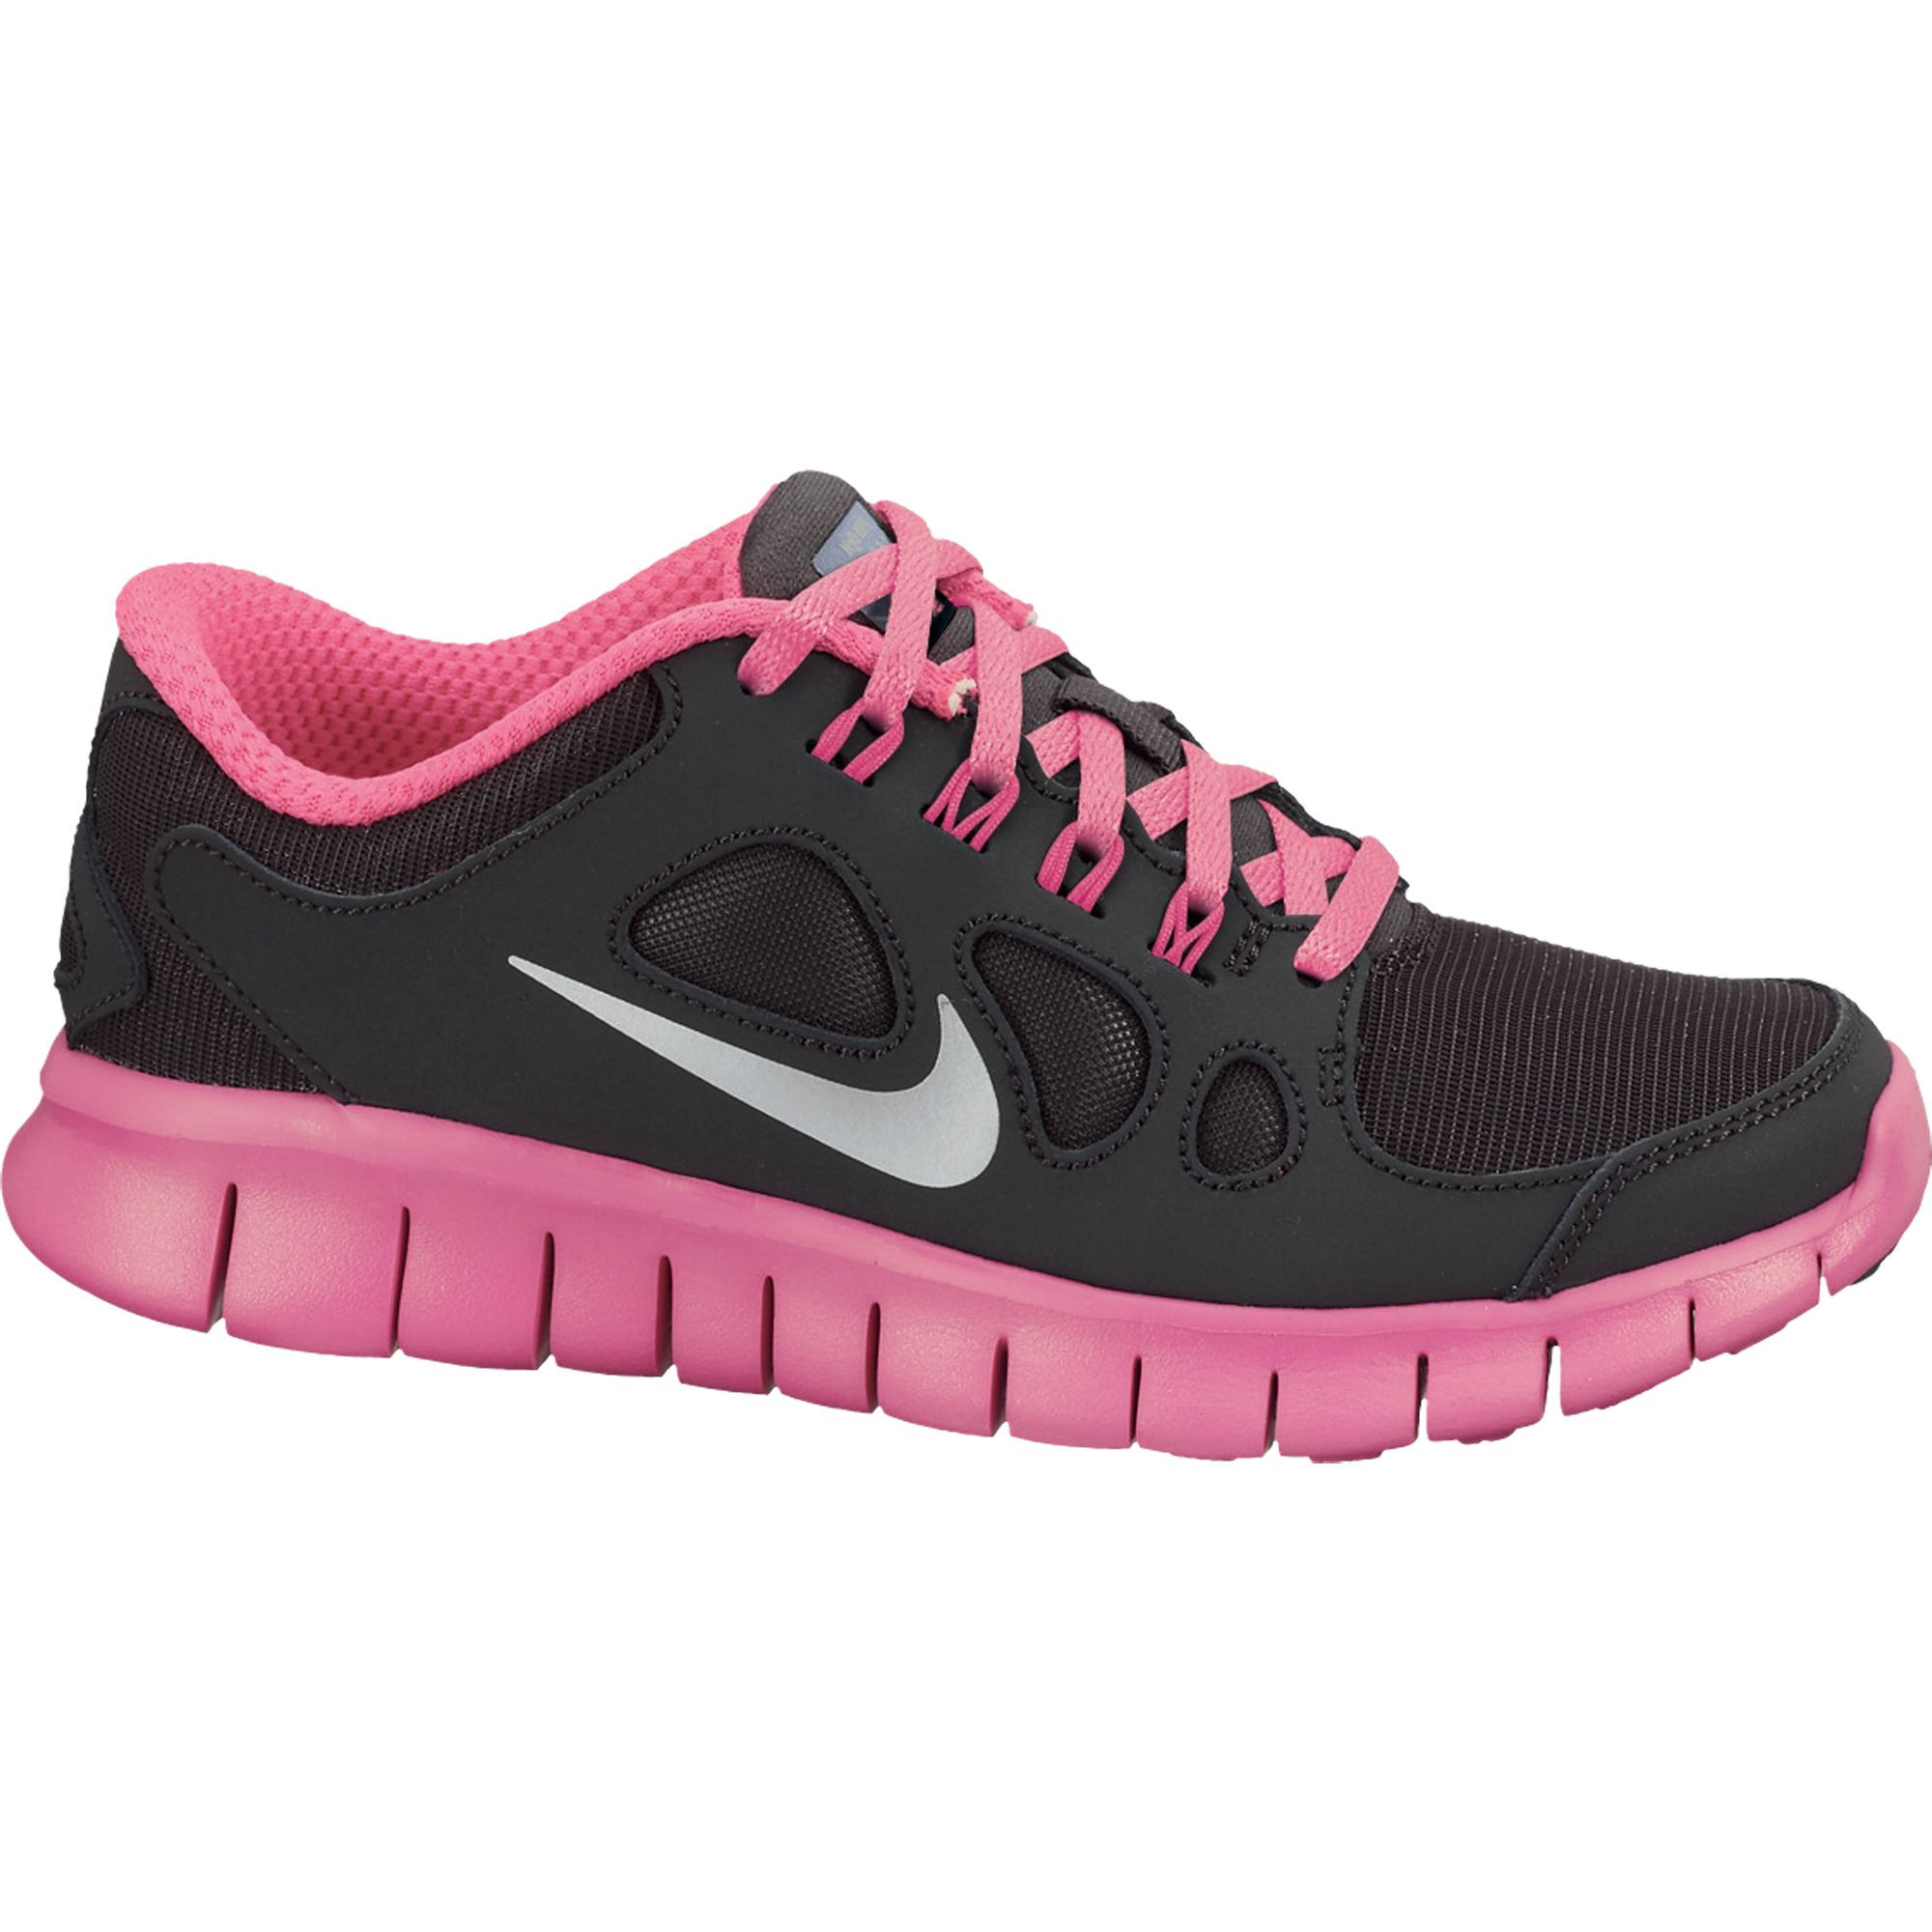 Wiggle | Nike Girls Free 5.0 Shield (GS) Shoes - HO13 ...